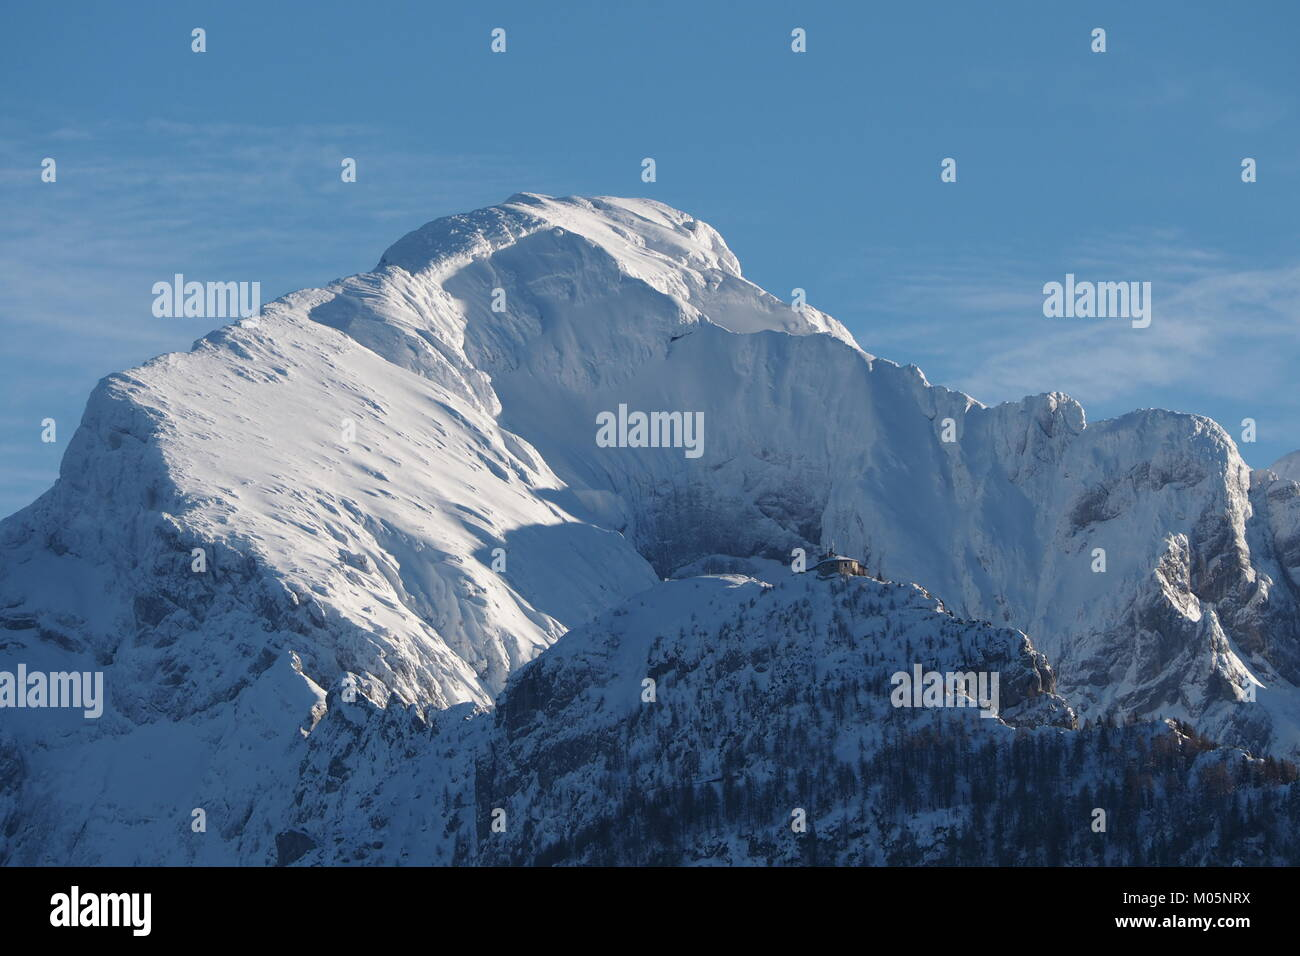 Mt. Hoher Goell and Kehlsteinhaus in winter with lots of snow Stock Photo